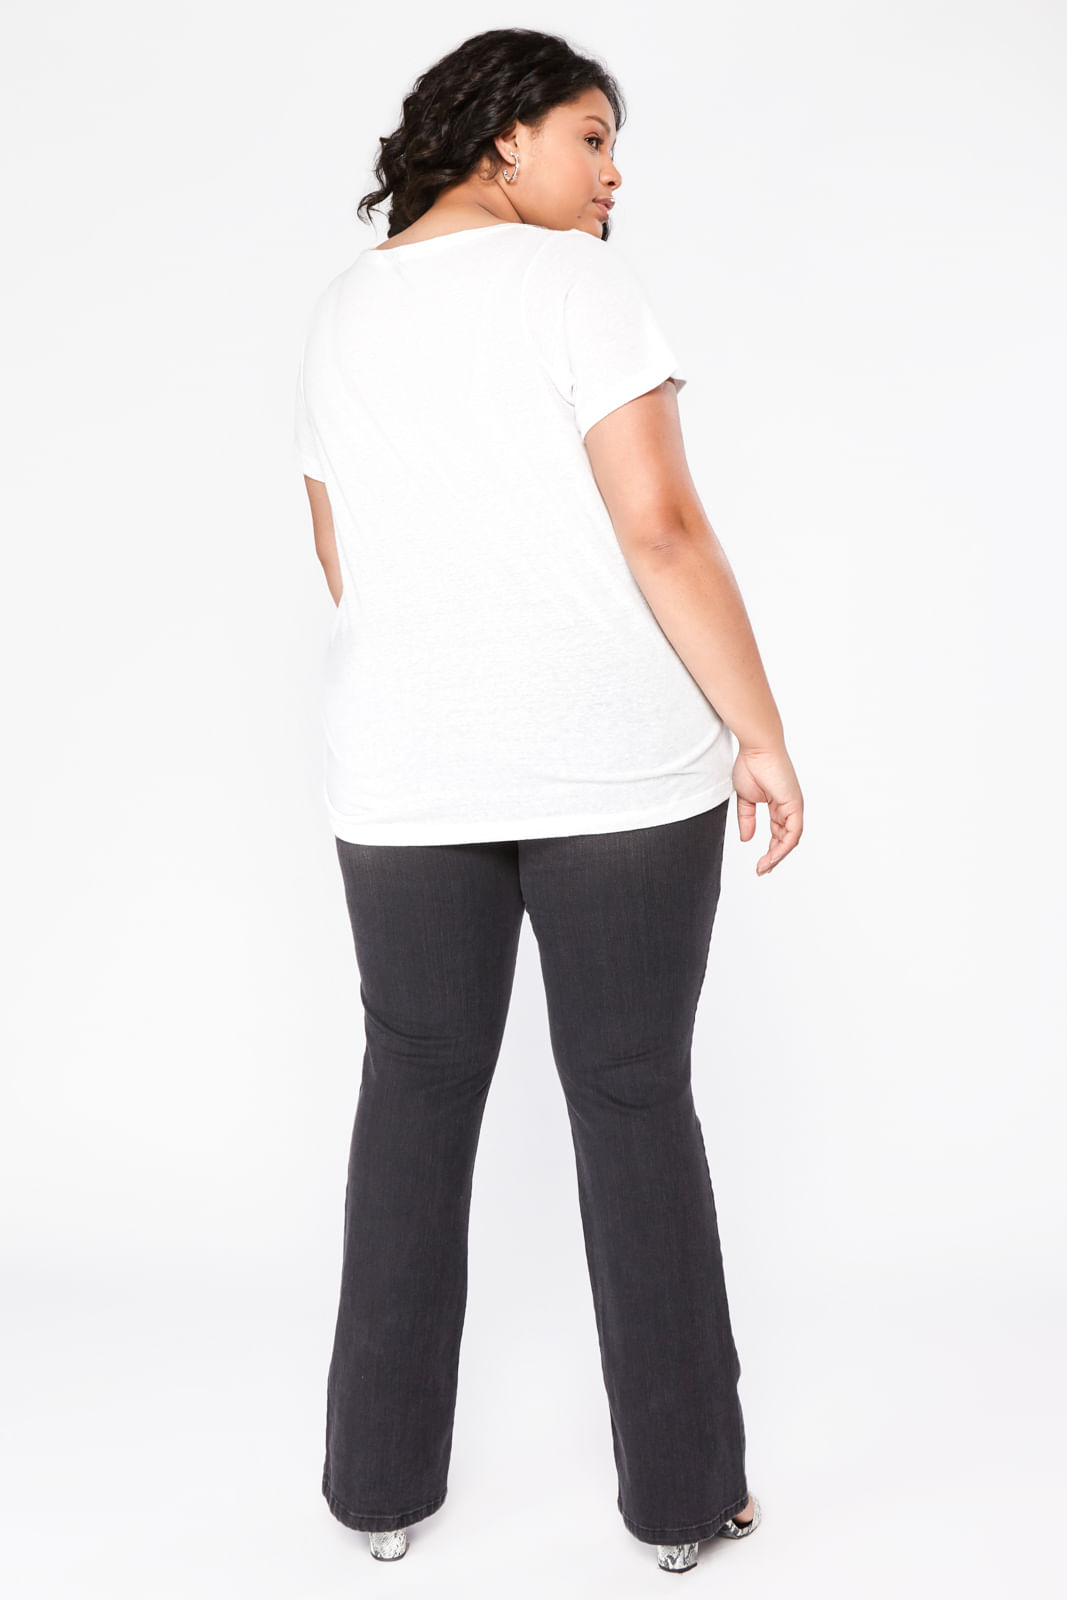 RAI005_Camiseta_Plus_Size_My_Body_Off_White_5